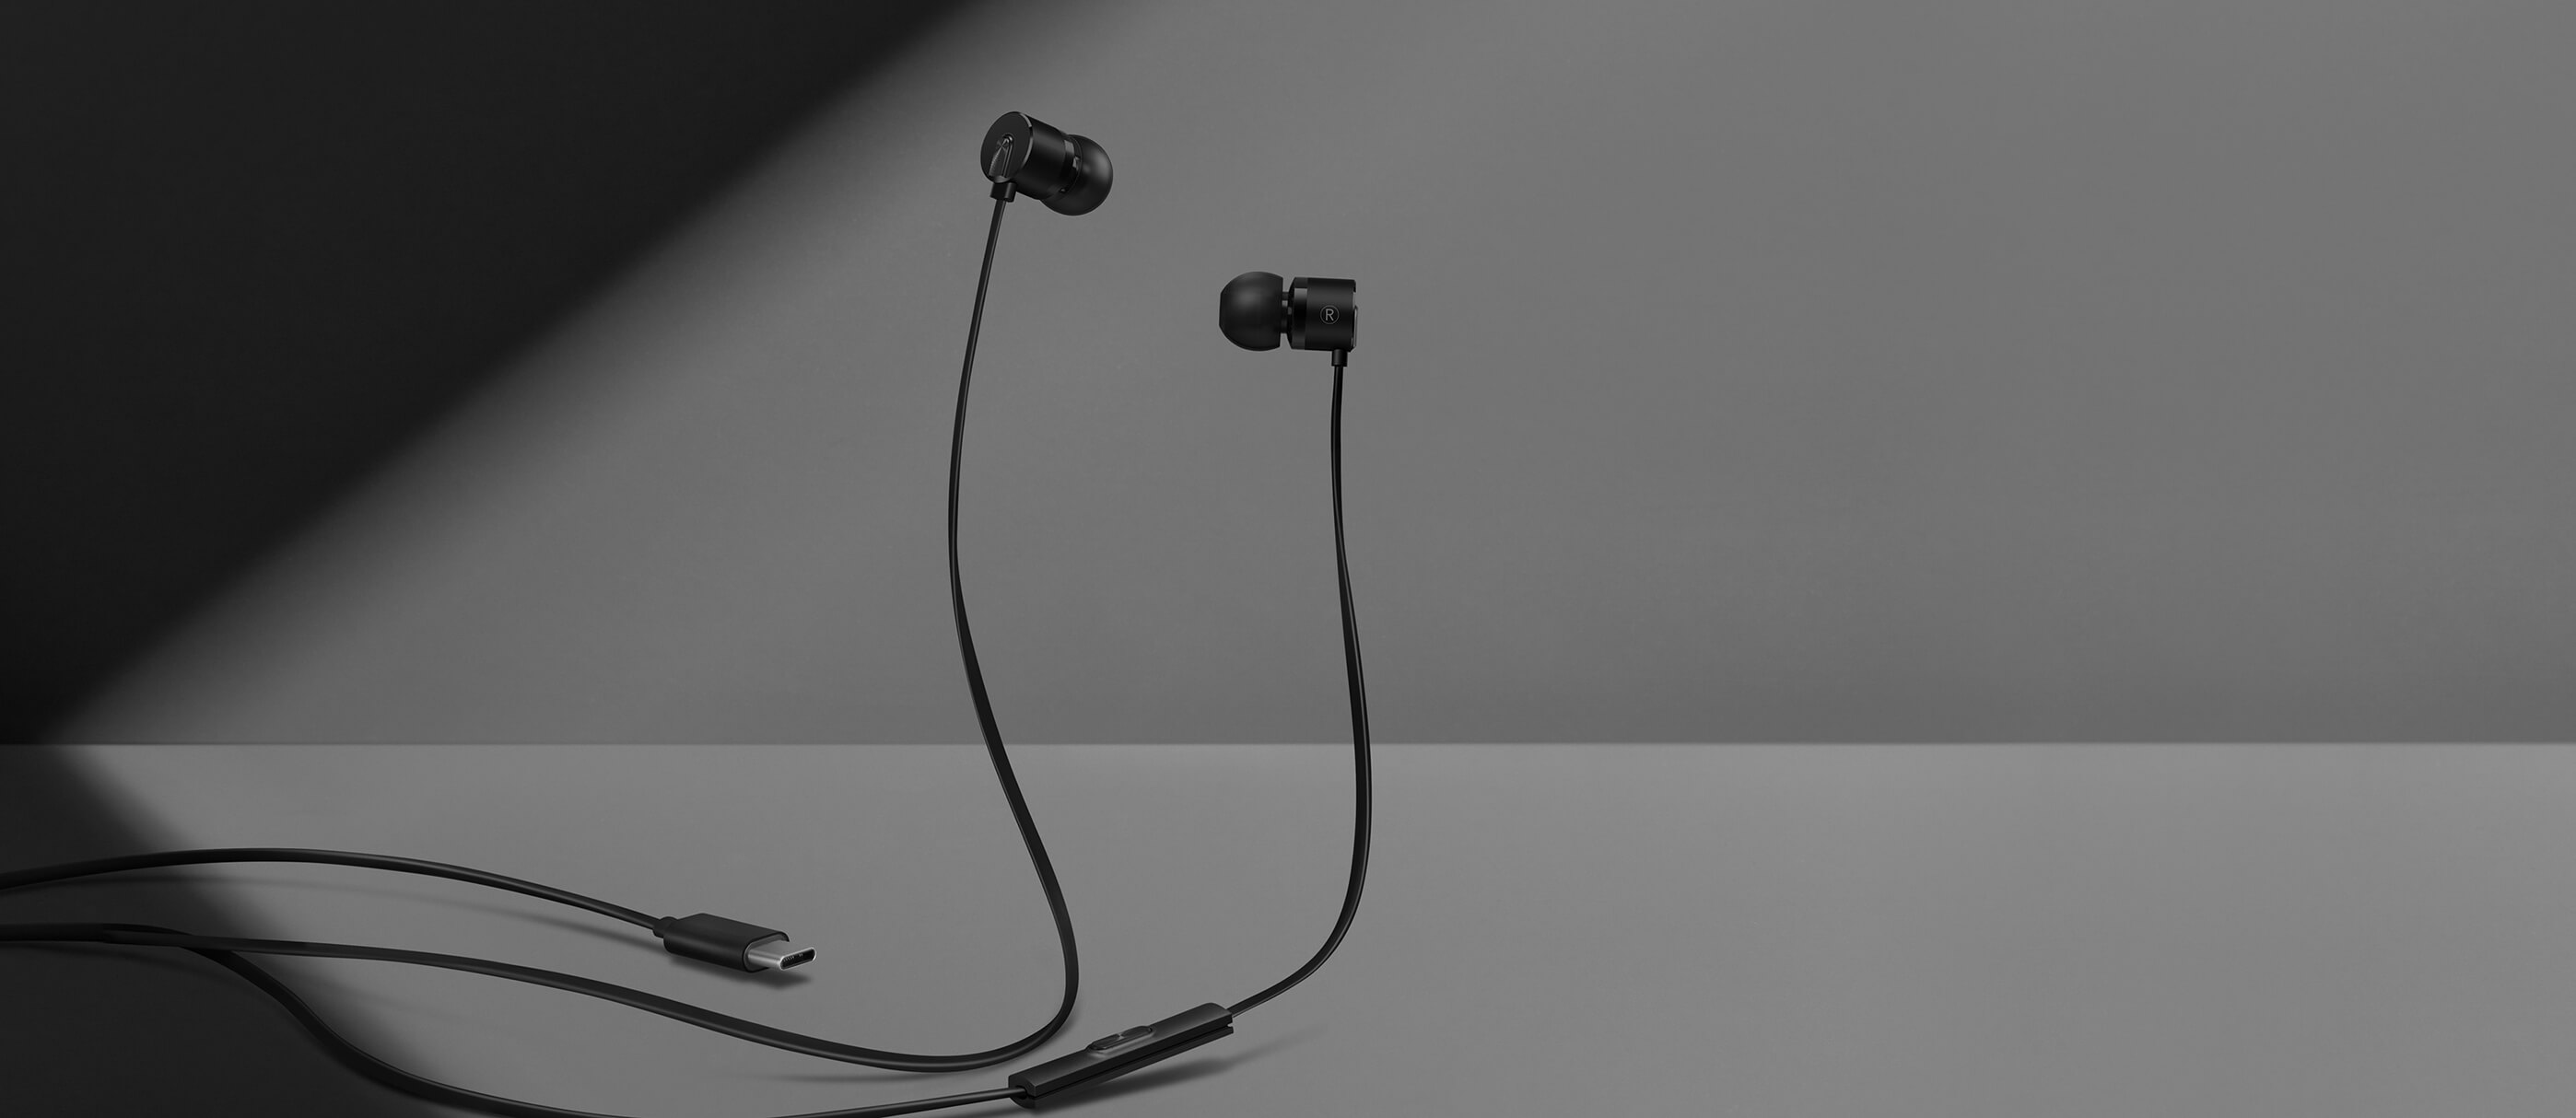 OnePlus Type-C Bullets Earphones